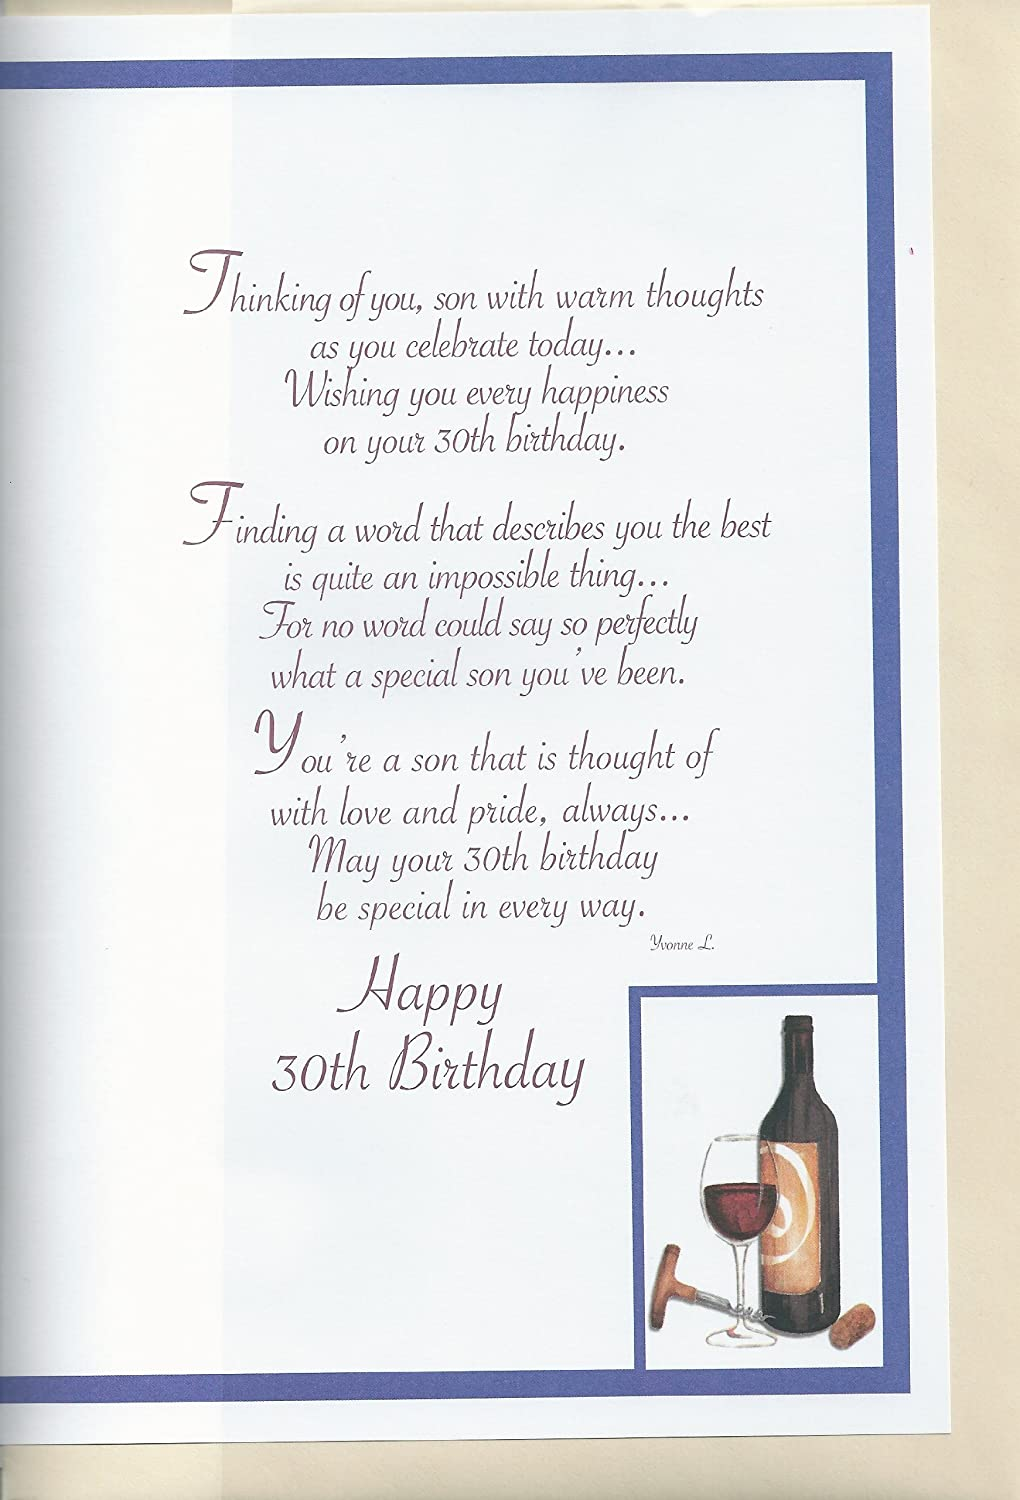 for a special son th birthday card amazon co uk kitchen home